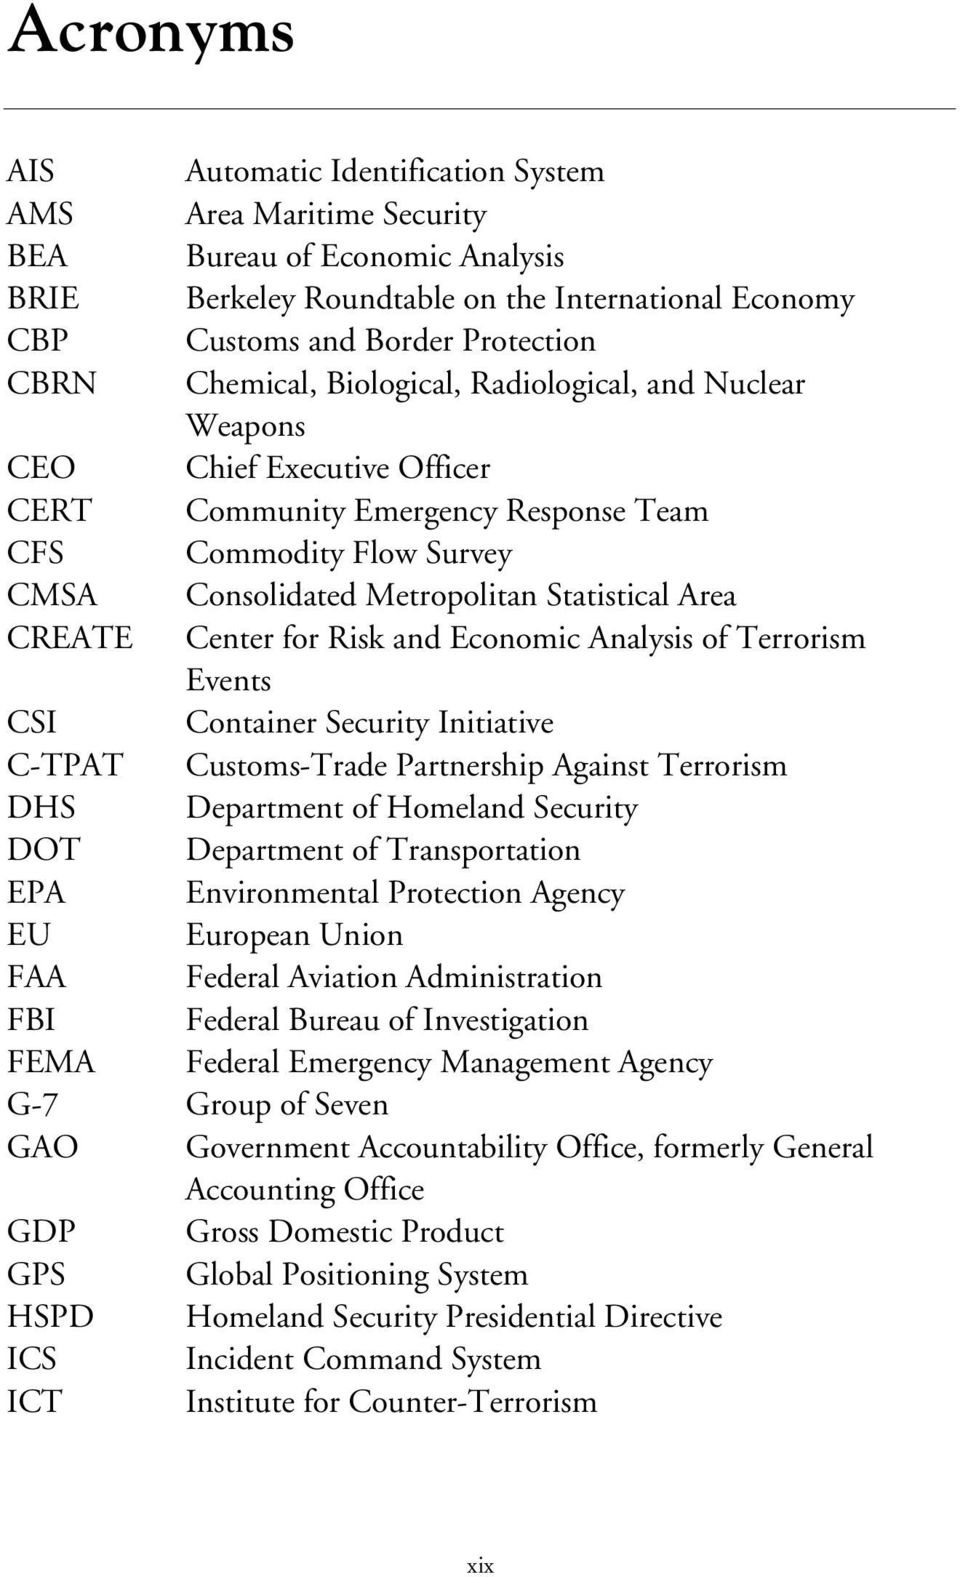 CREATE Center for Risk and Economic Analysis of Terrorism Events CSI Container Security Initiative C-TPAT Customs-Trade Partnership Against Terrorism DHS Department of Homeland Security DOT